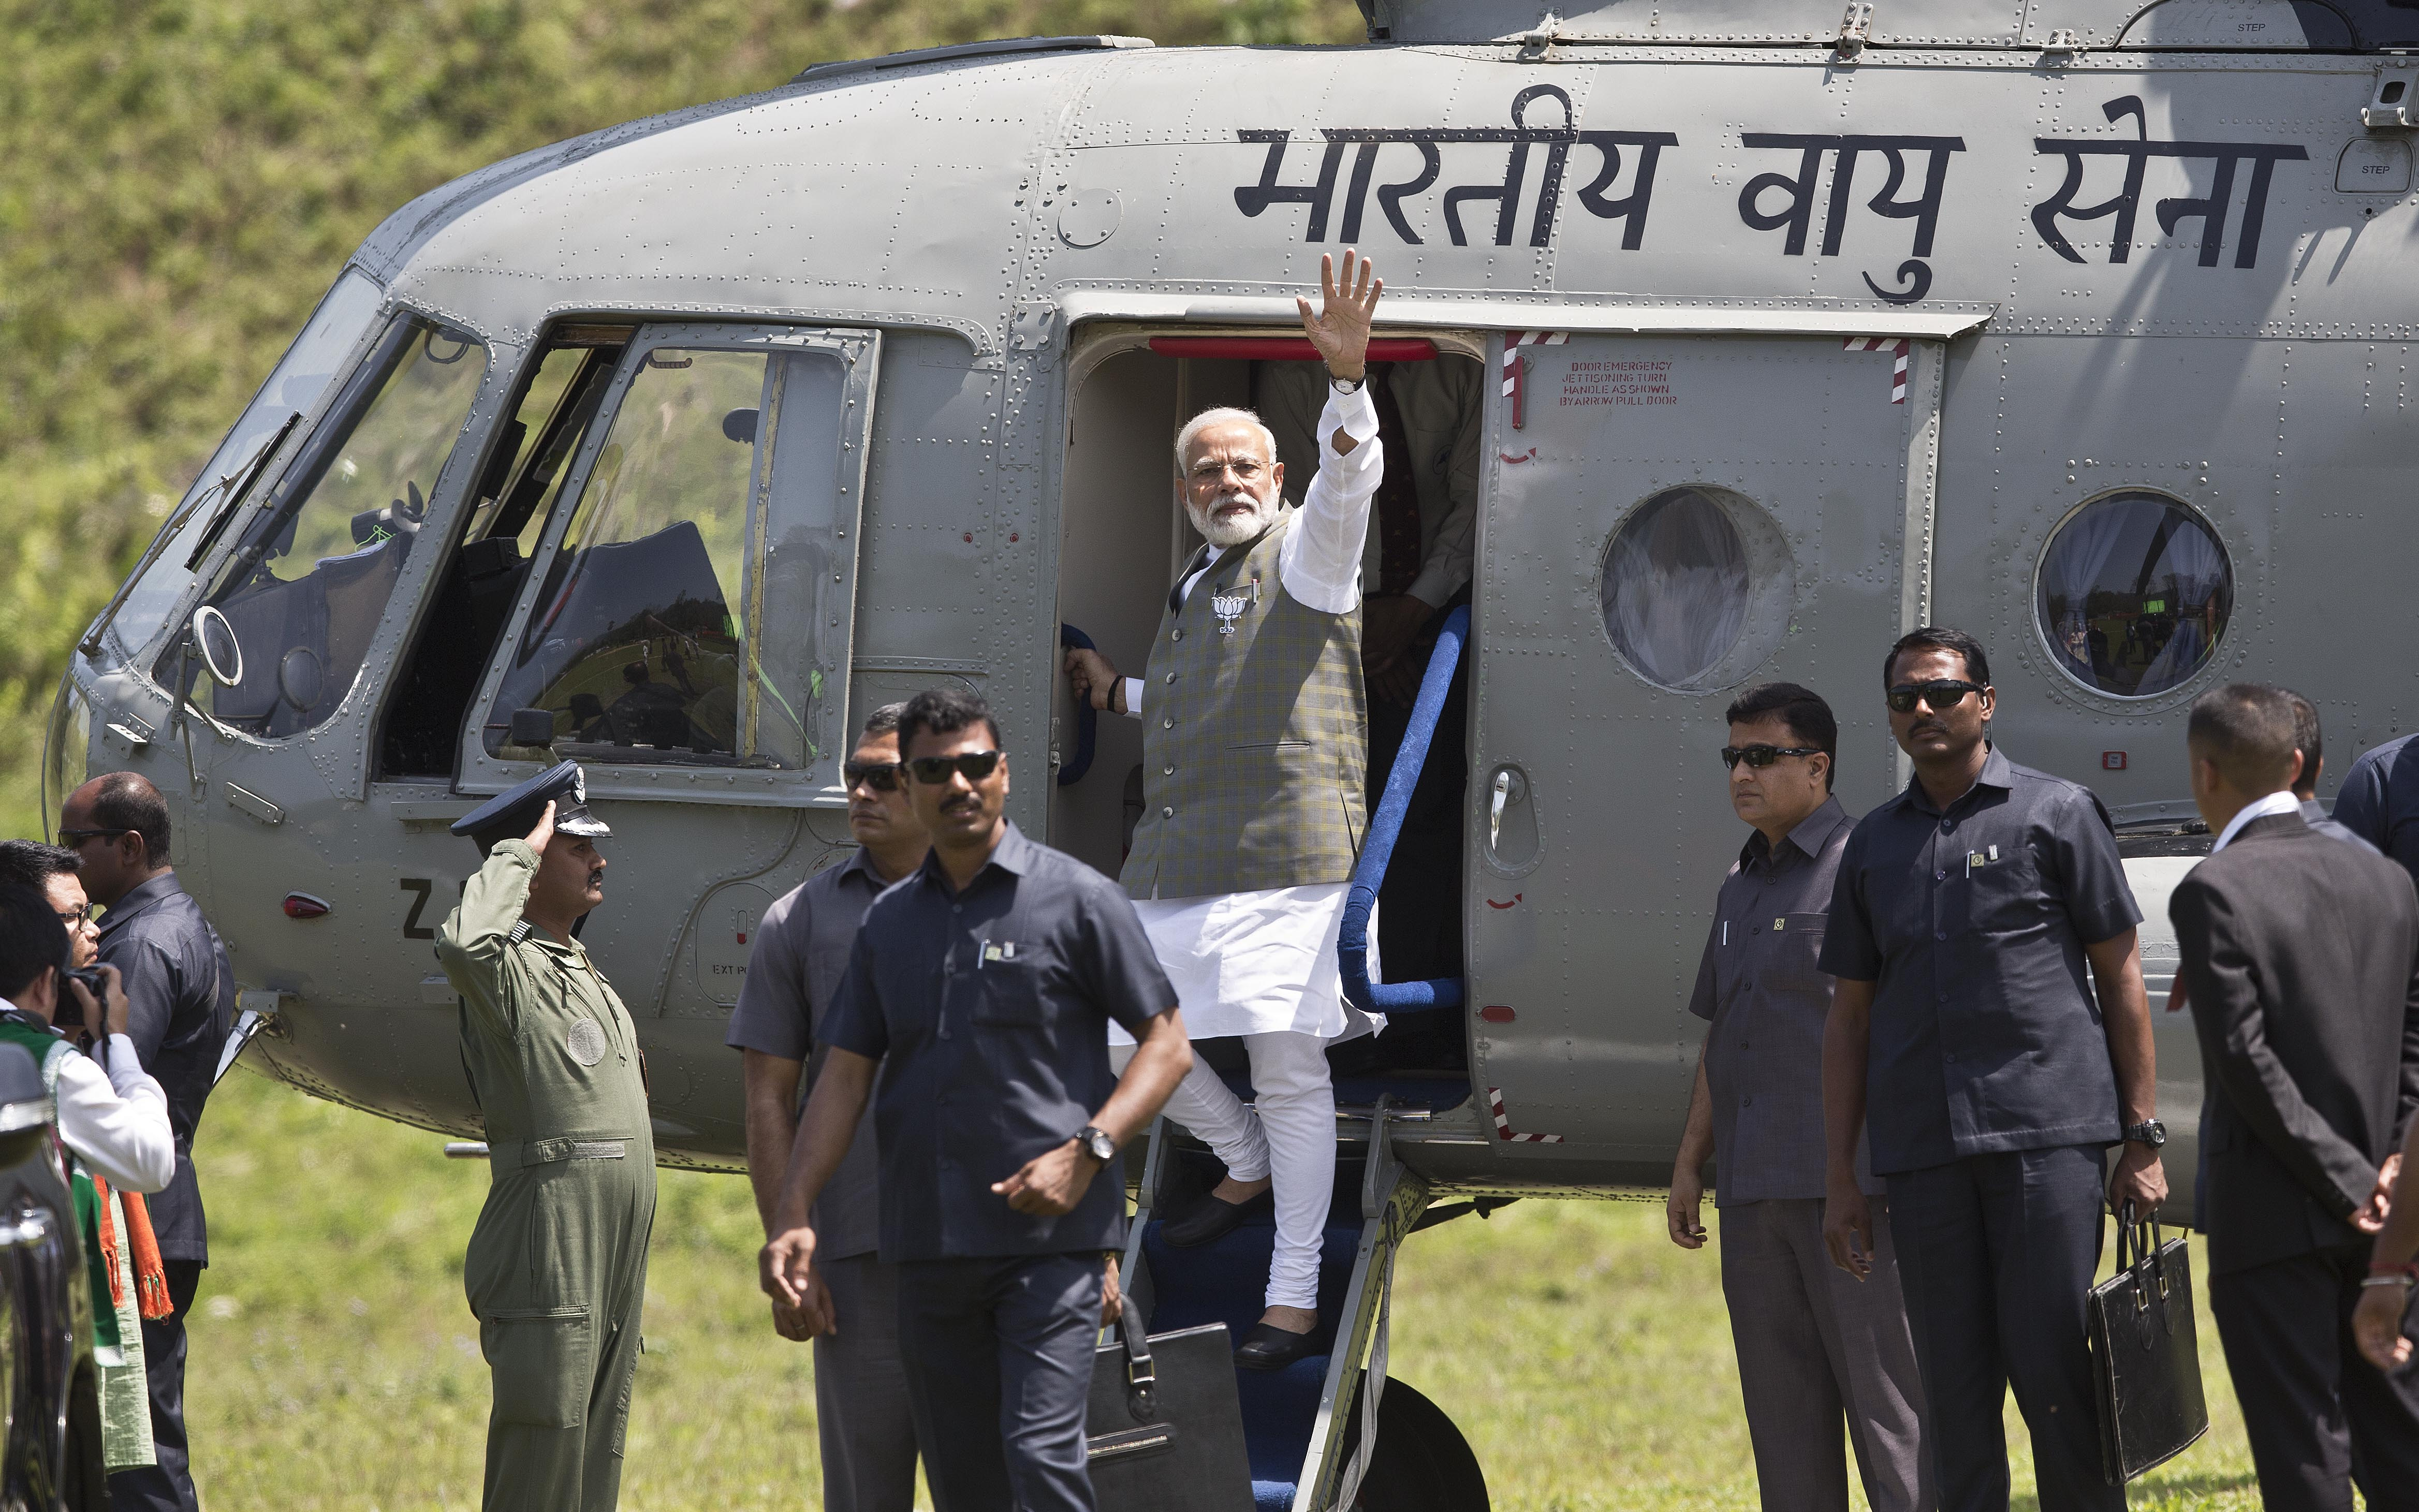 Indian Prime Minister Narendra Modi, center, arrives for an election campaign rally in Along, Arunachal Pradesh, India, March 30, 2019. Poll workers for India's general elections will likely use a helicopter to reach voters in that state.